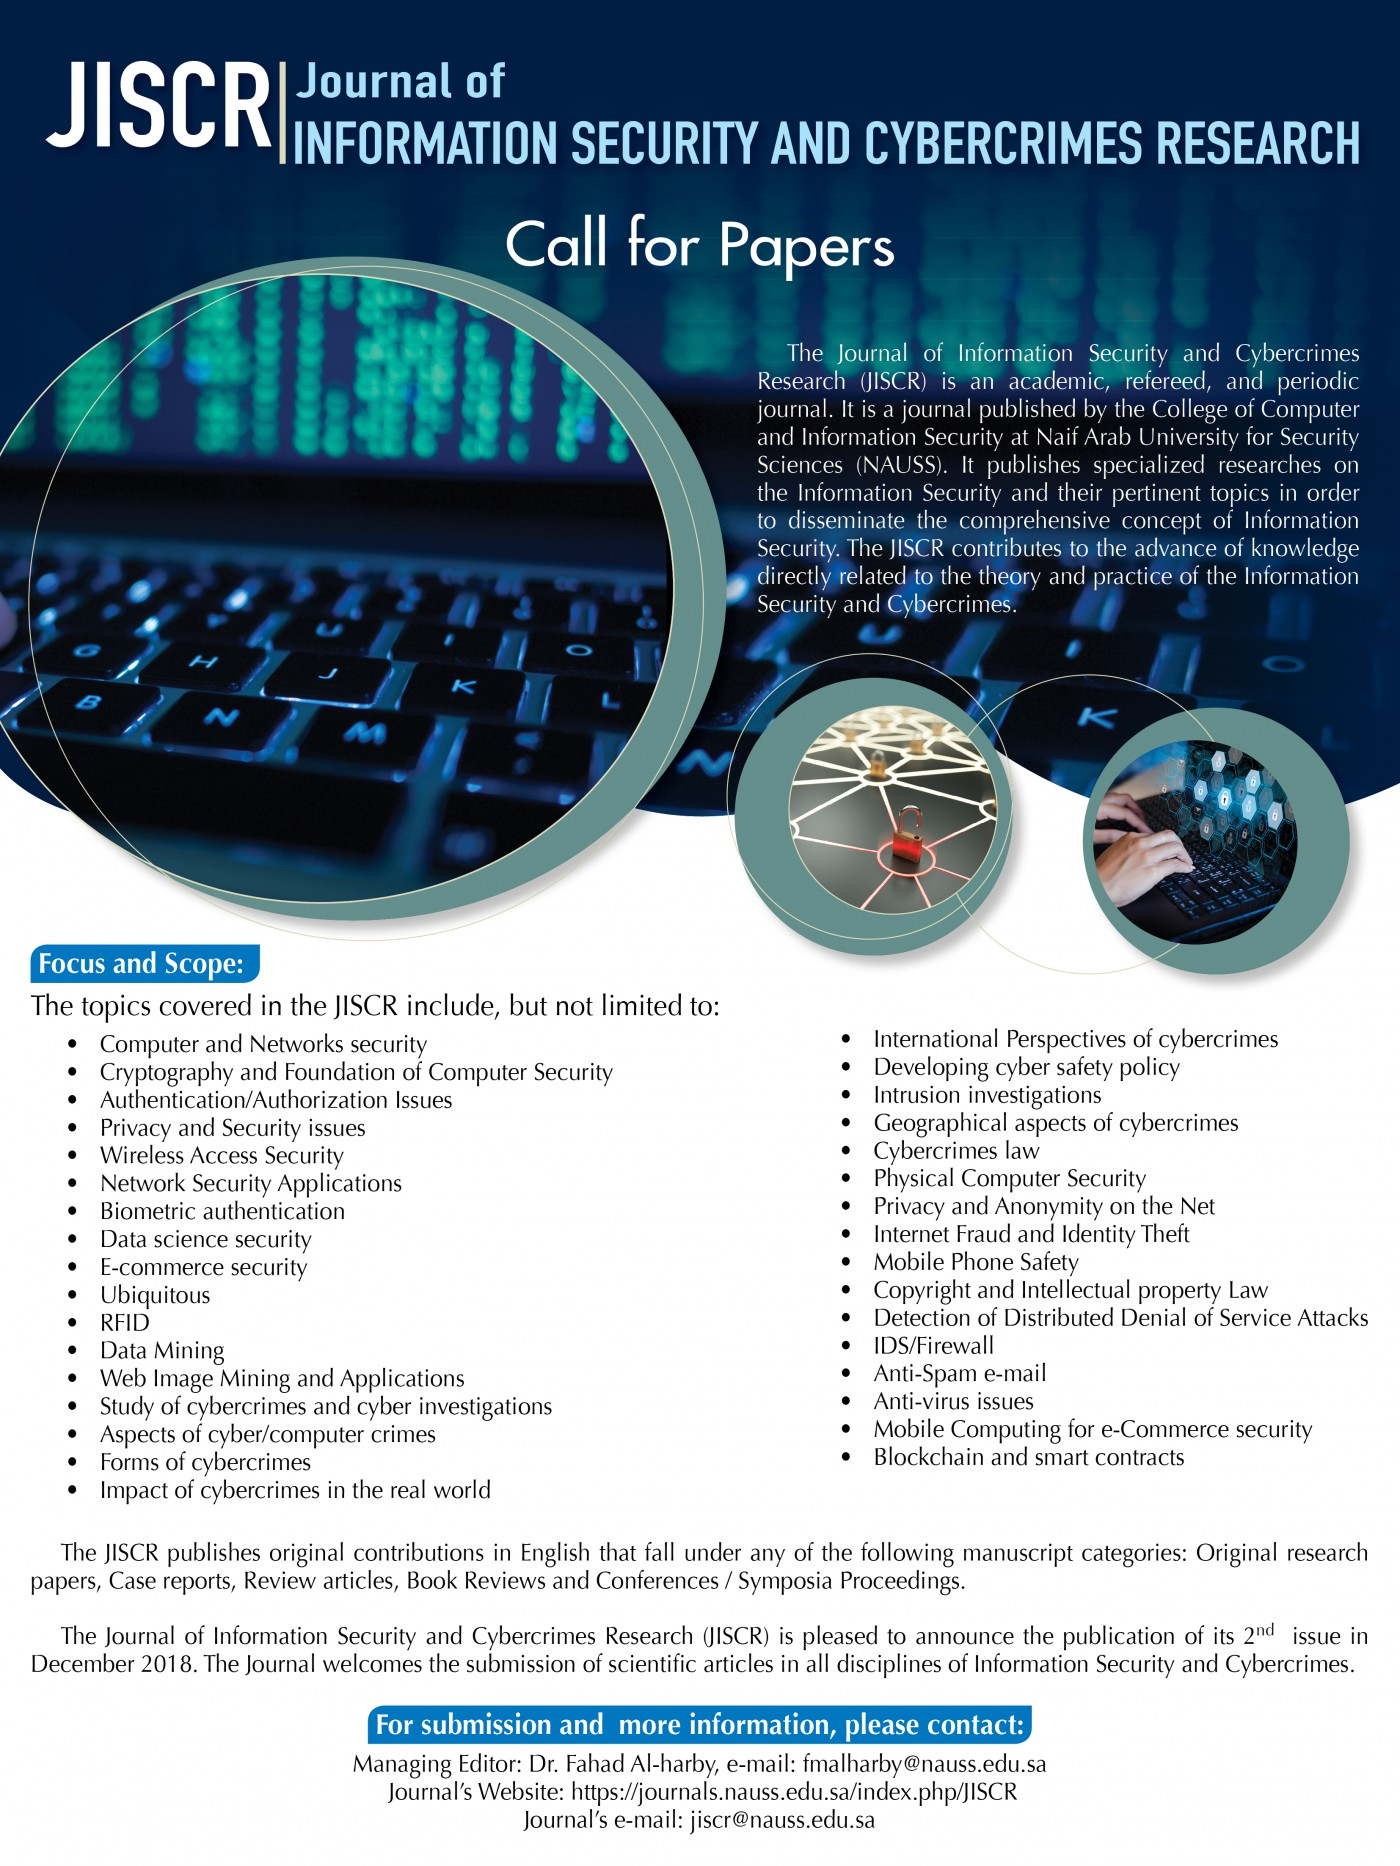 024 Call For December Cyber Security Research Dreaded Paper 2019 Papers 2018 1400